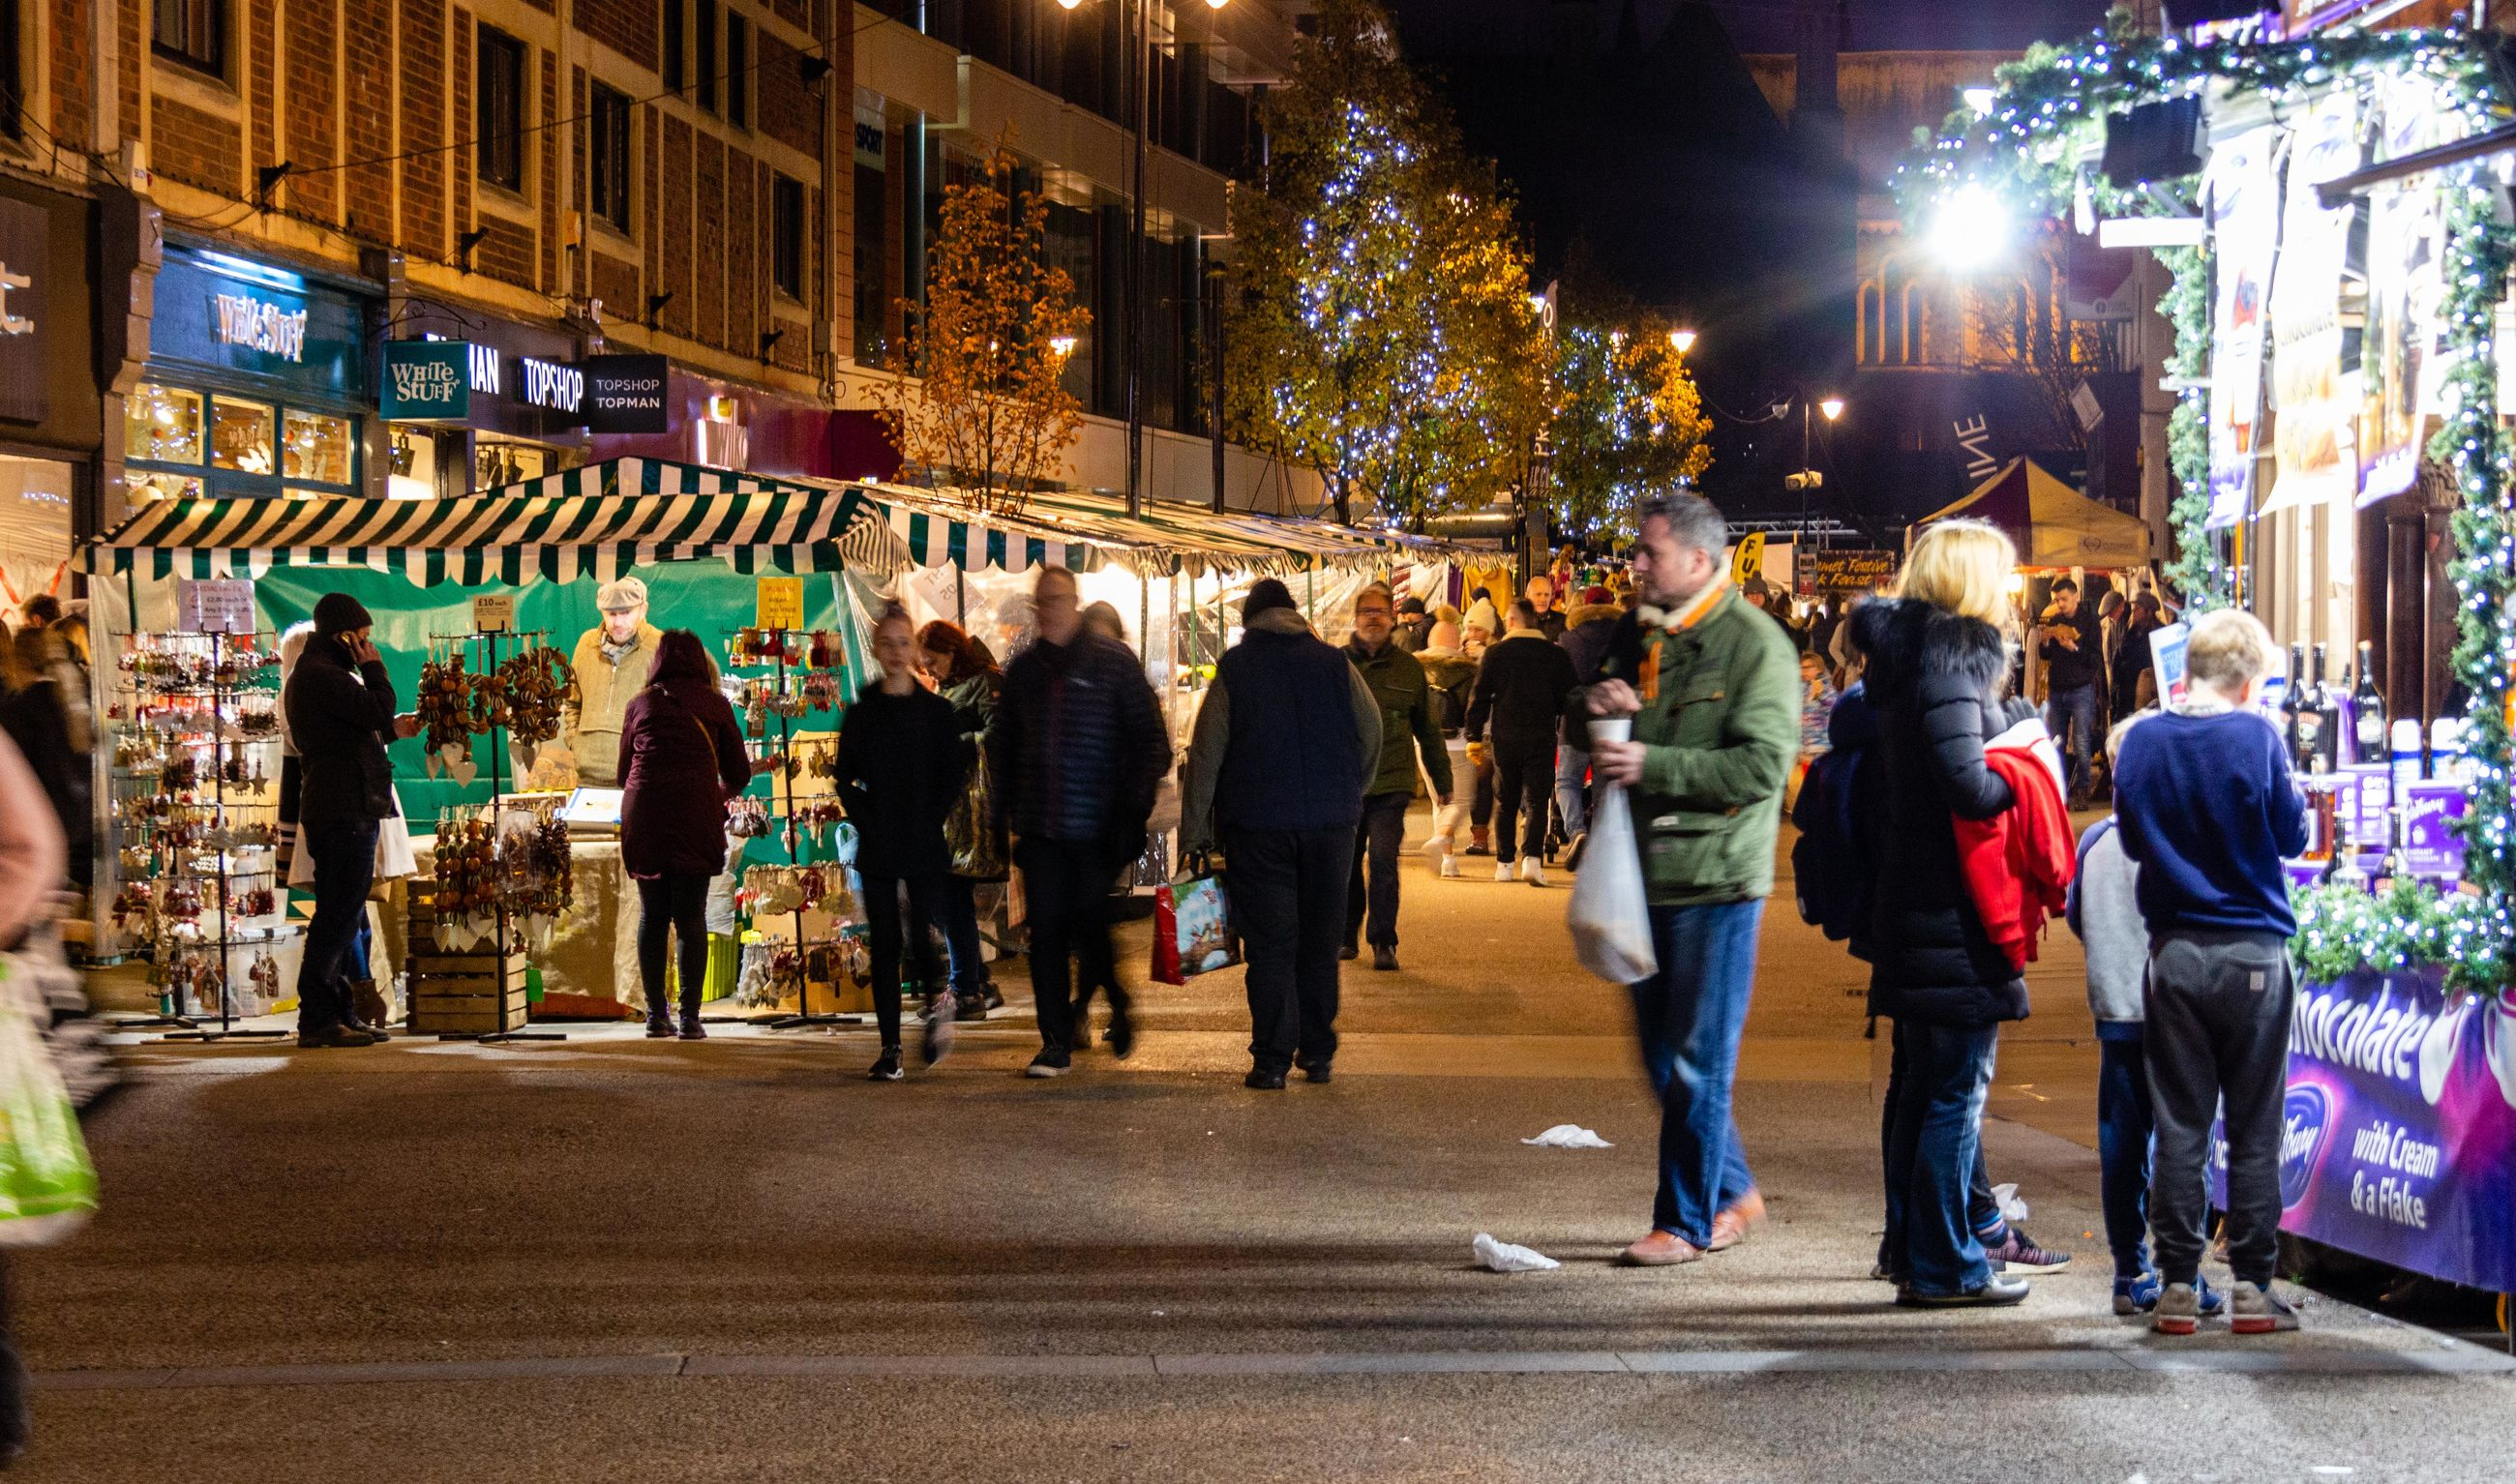 group of people, night, architecture, city, building exterior, illuminated, large group of people, street, crowd, men, real people, women, built structure, adult, city life, lifestyles, walking, motion, lighting equipment, light, street market